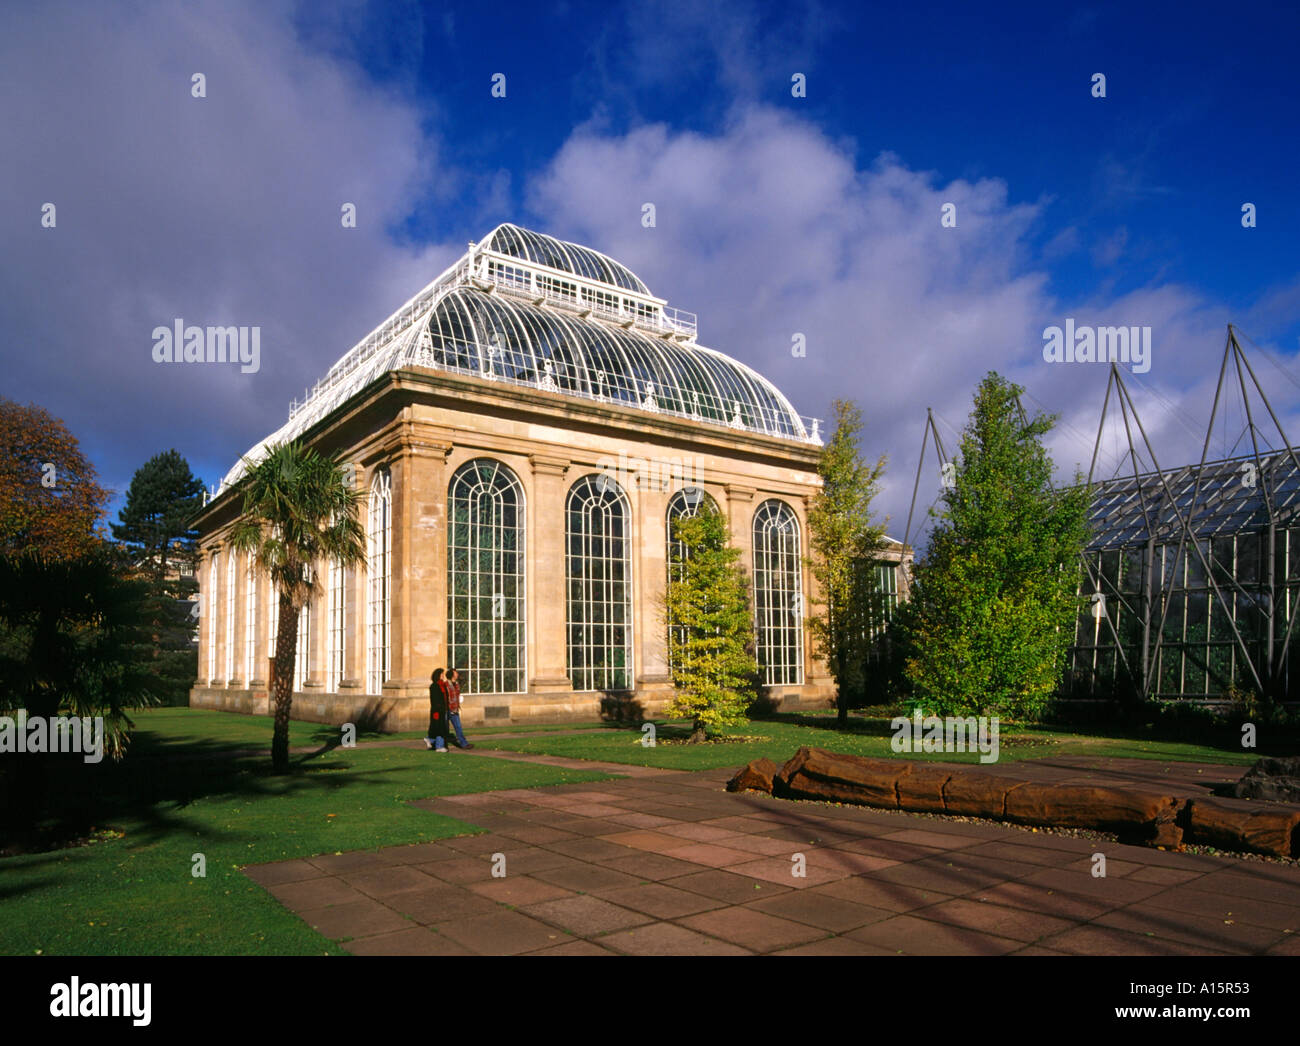 dh Botanical palm house ROYAL BOTANIC GARDEN EDINBURGH Couple tourists glasshouse gardens people Scotland - Stock Image